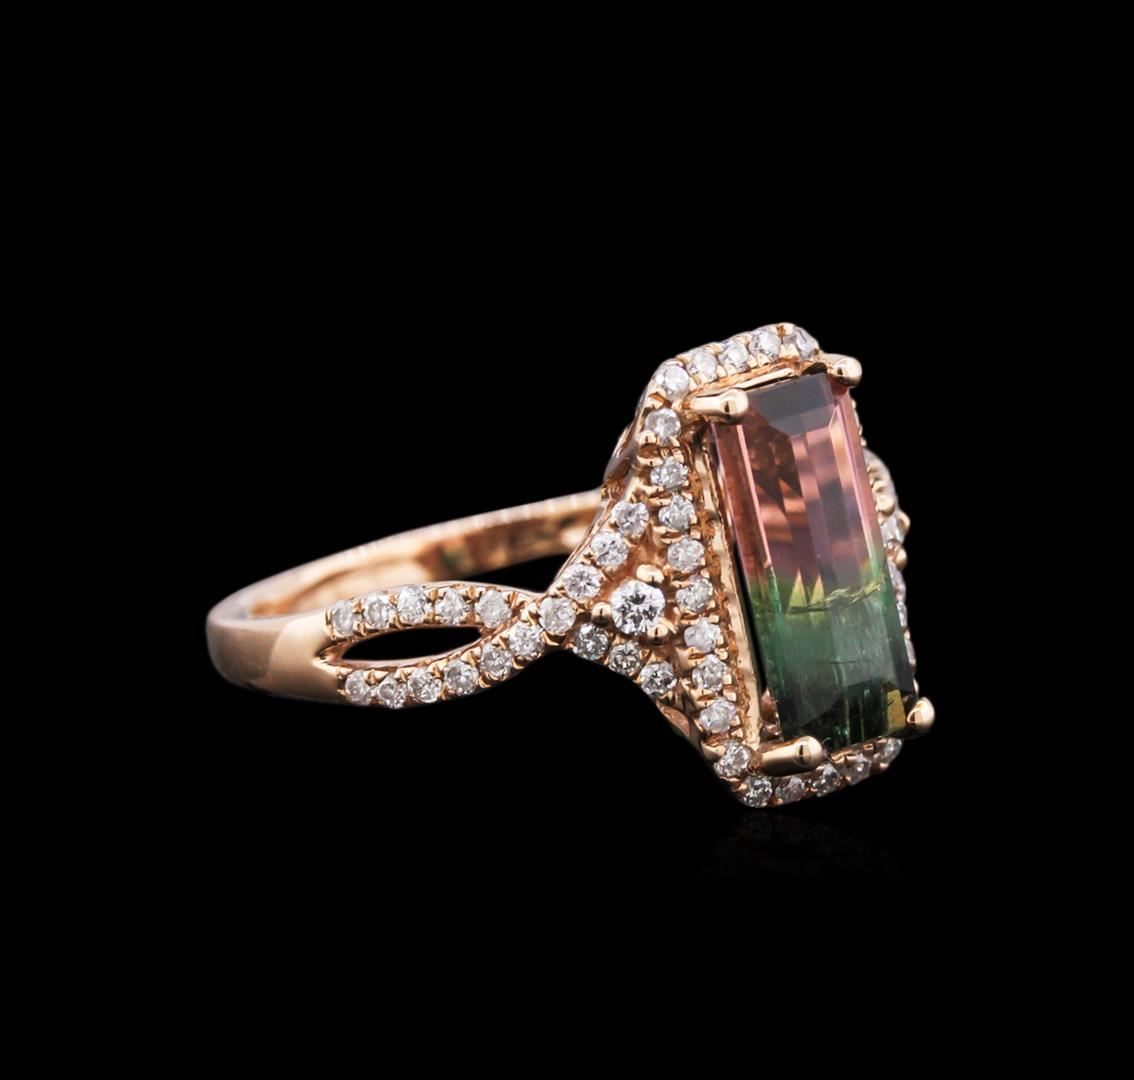 Ring Auction 204 CT BiColor Tourmaline and Diamond Ring  Seized Assets Auctioneers